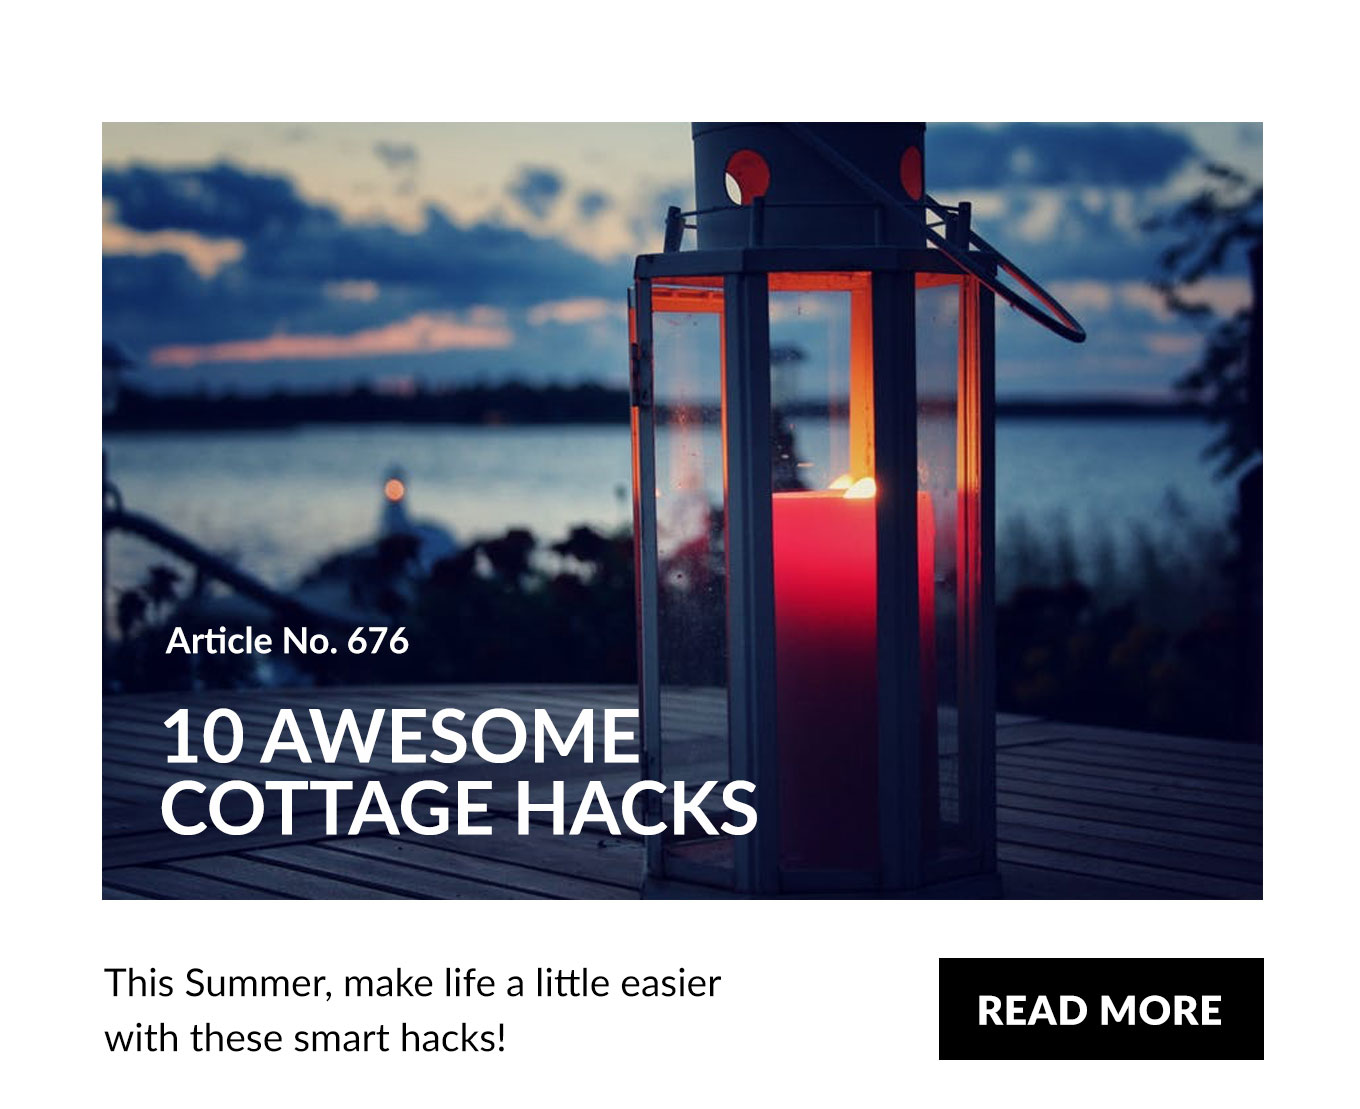 10 Awesome Cottage Hacks!